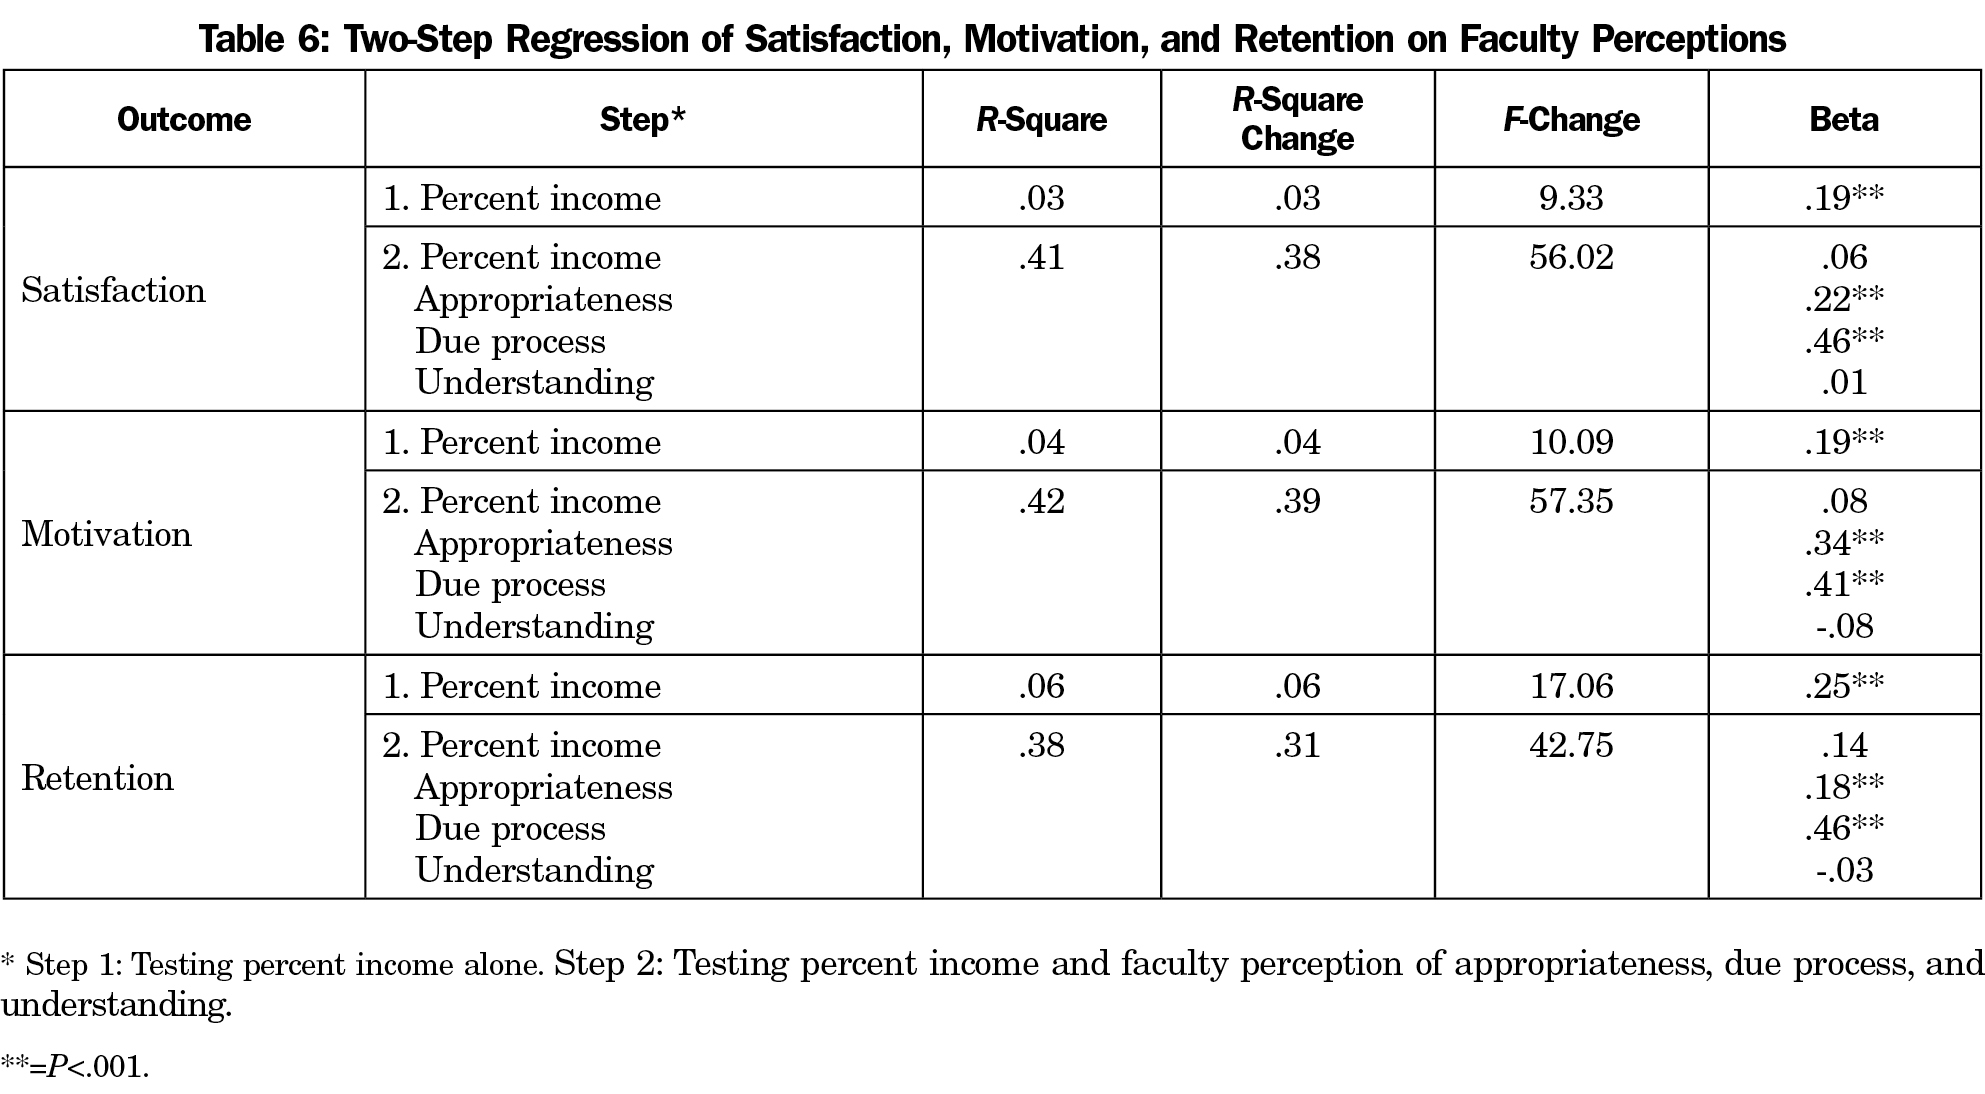 Satisfaction, Motivation, and Retention in Academic Faculty